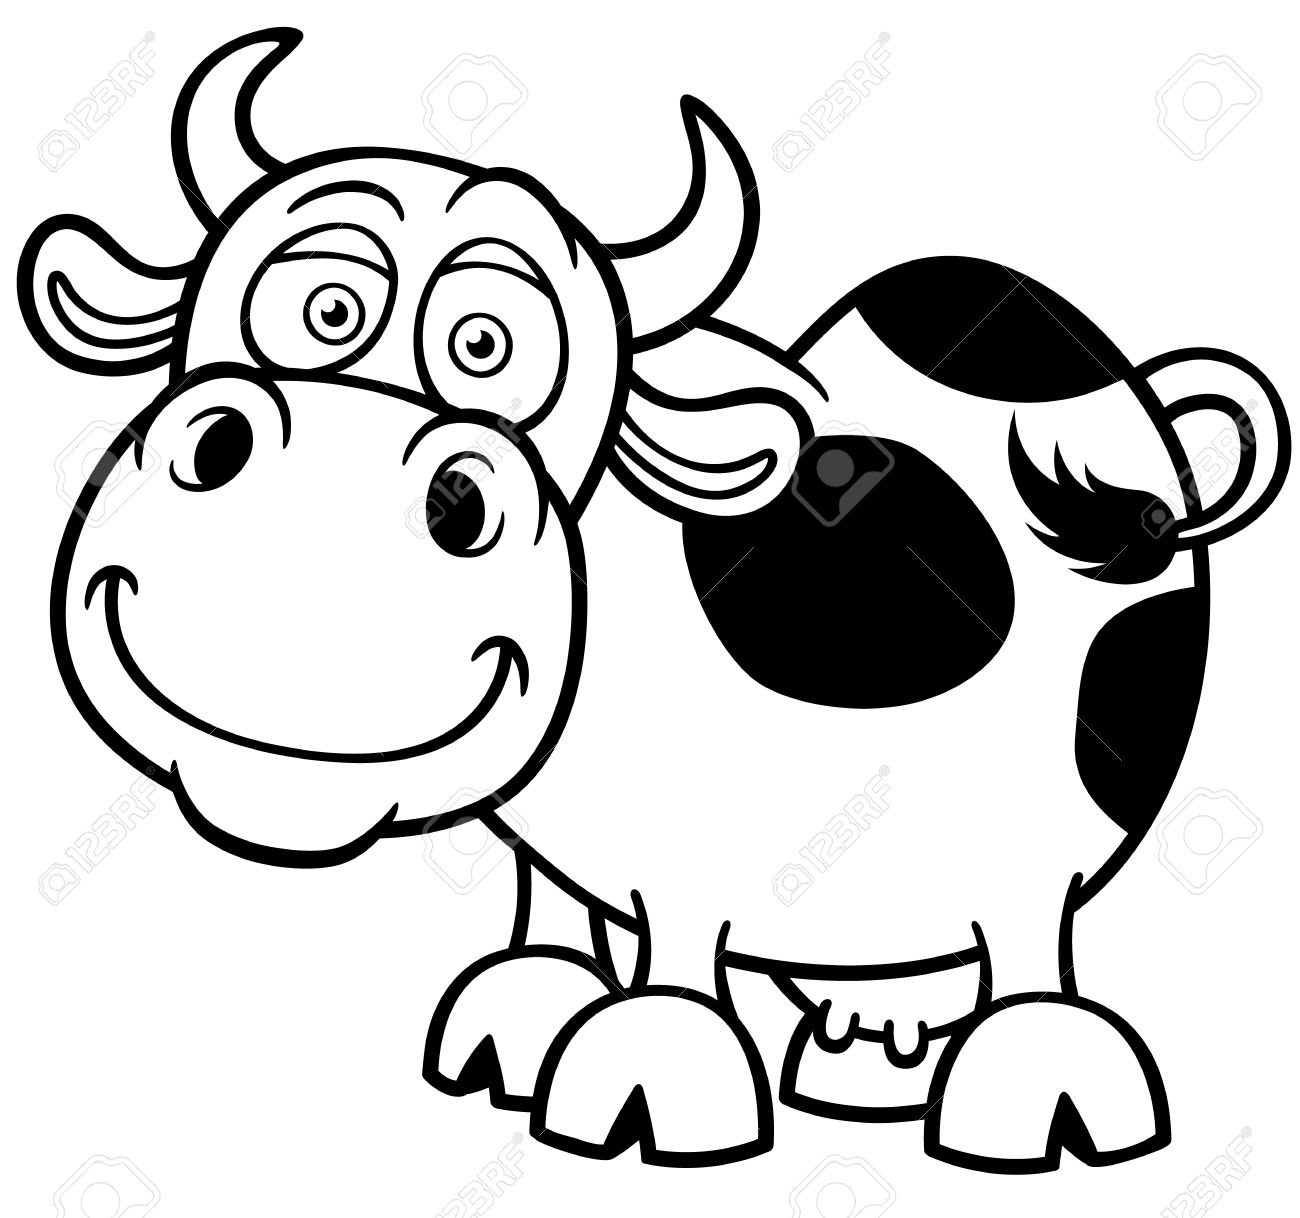 Illustration Of Cartoon Cow - Coloring Book Royalty Free Cliparts ...